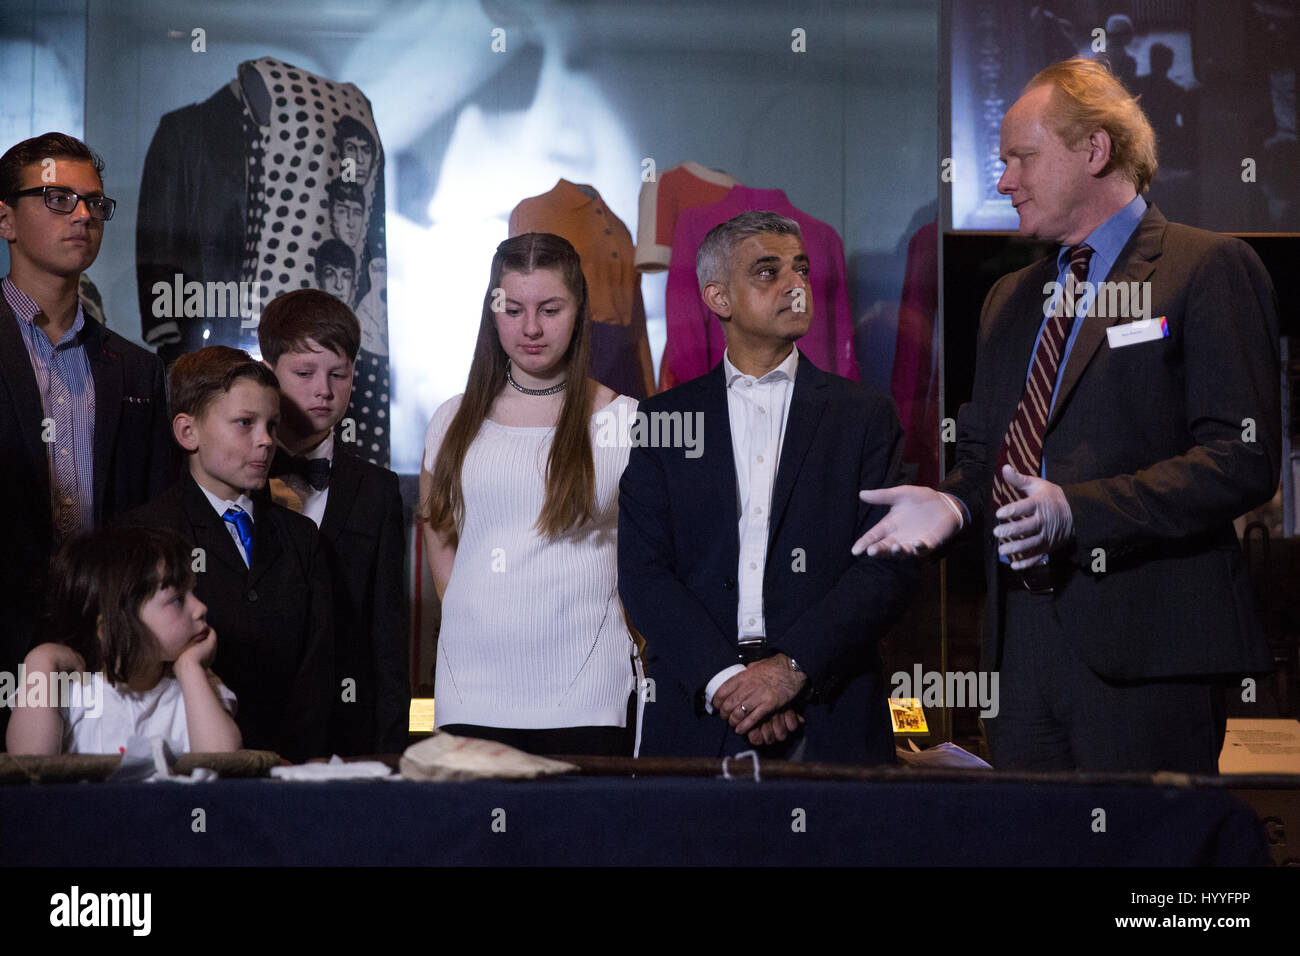 London, UK. 4th April, 2017. Mayor Sadiq Khan joins children at a Great Smog workshop by Alex Werner, Museum of - Stock Image